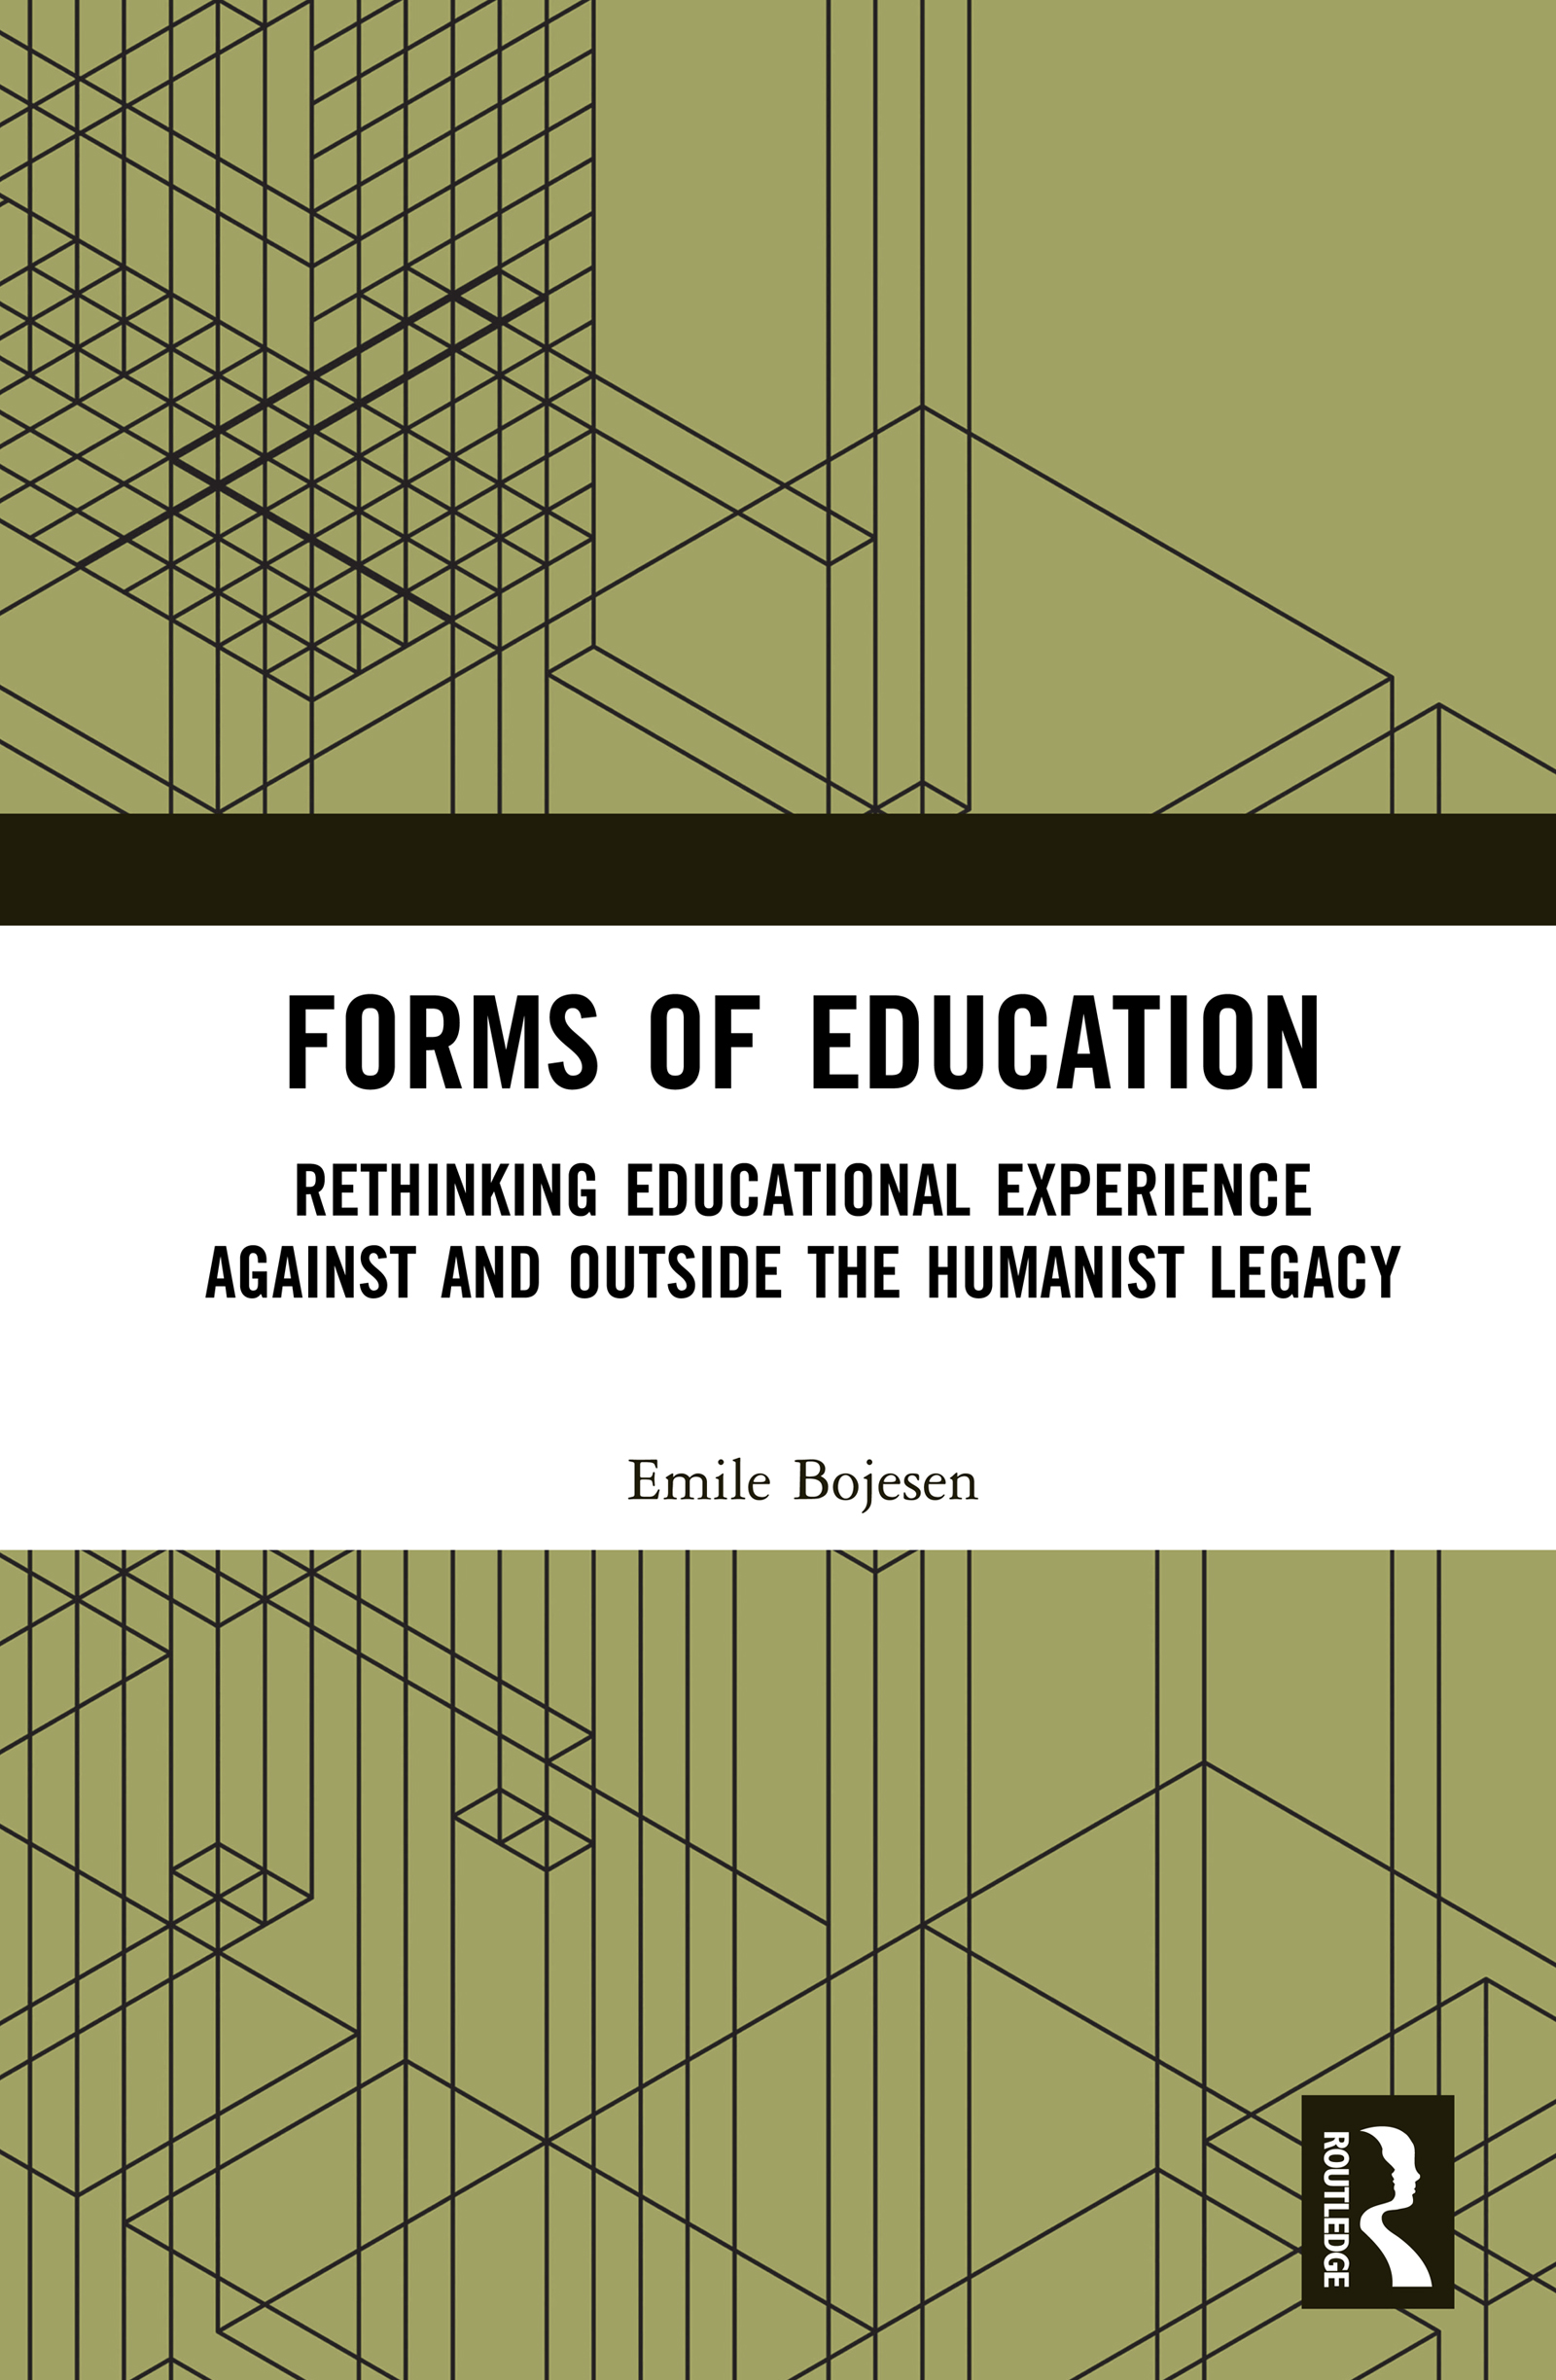 Forms of Education: Rethinking Educational Experience Against and Outside the Humanist Legacy book cover